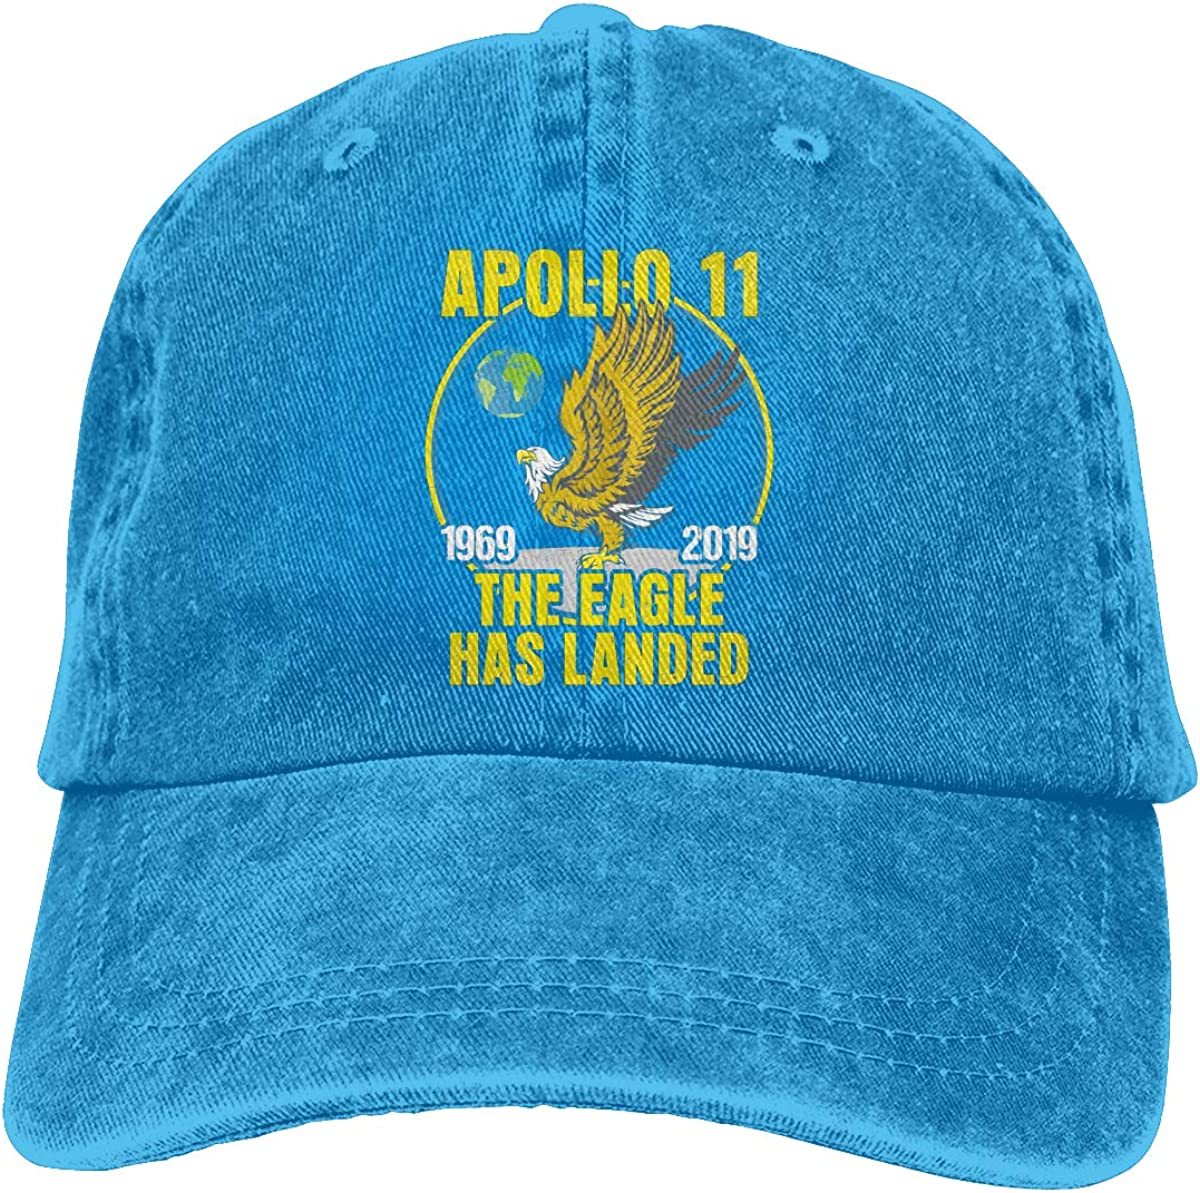 Apollo 11 50th Anniversary Sports Cap for Mens and Womens